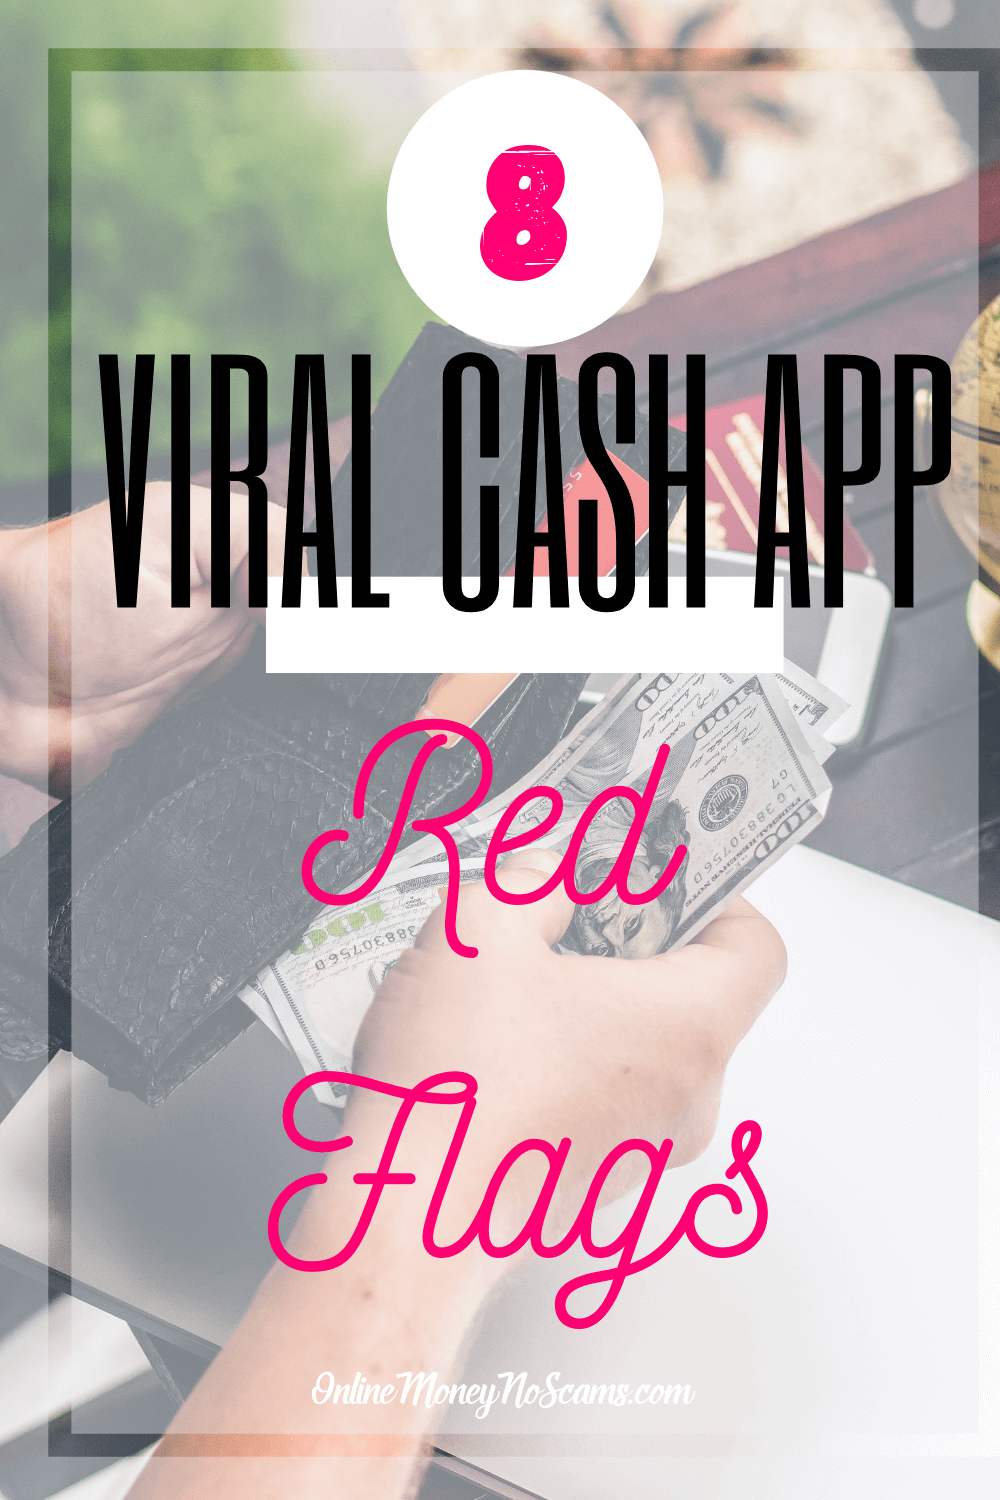 What Is The Viral Cash App? 8 Red Flags (With images